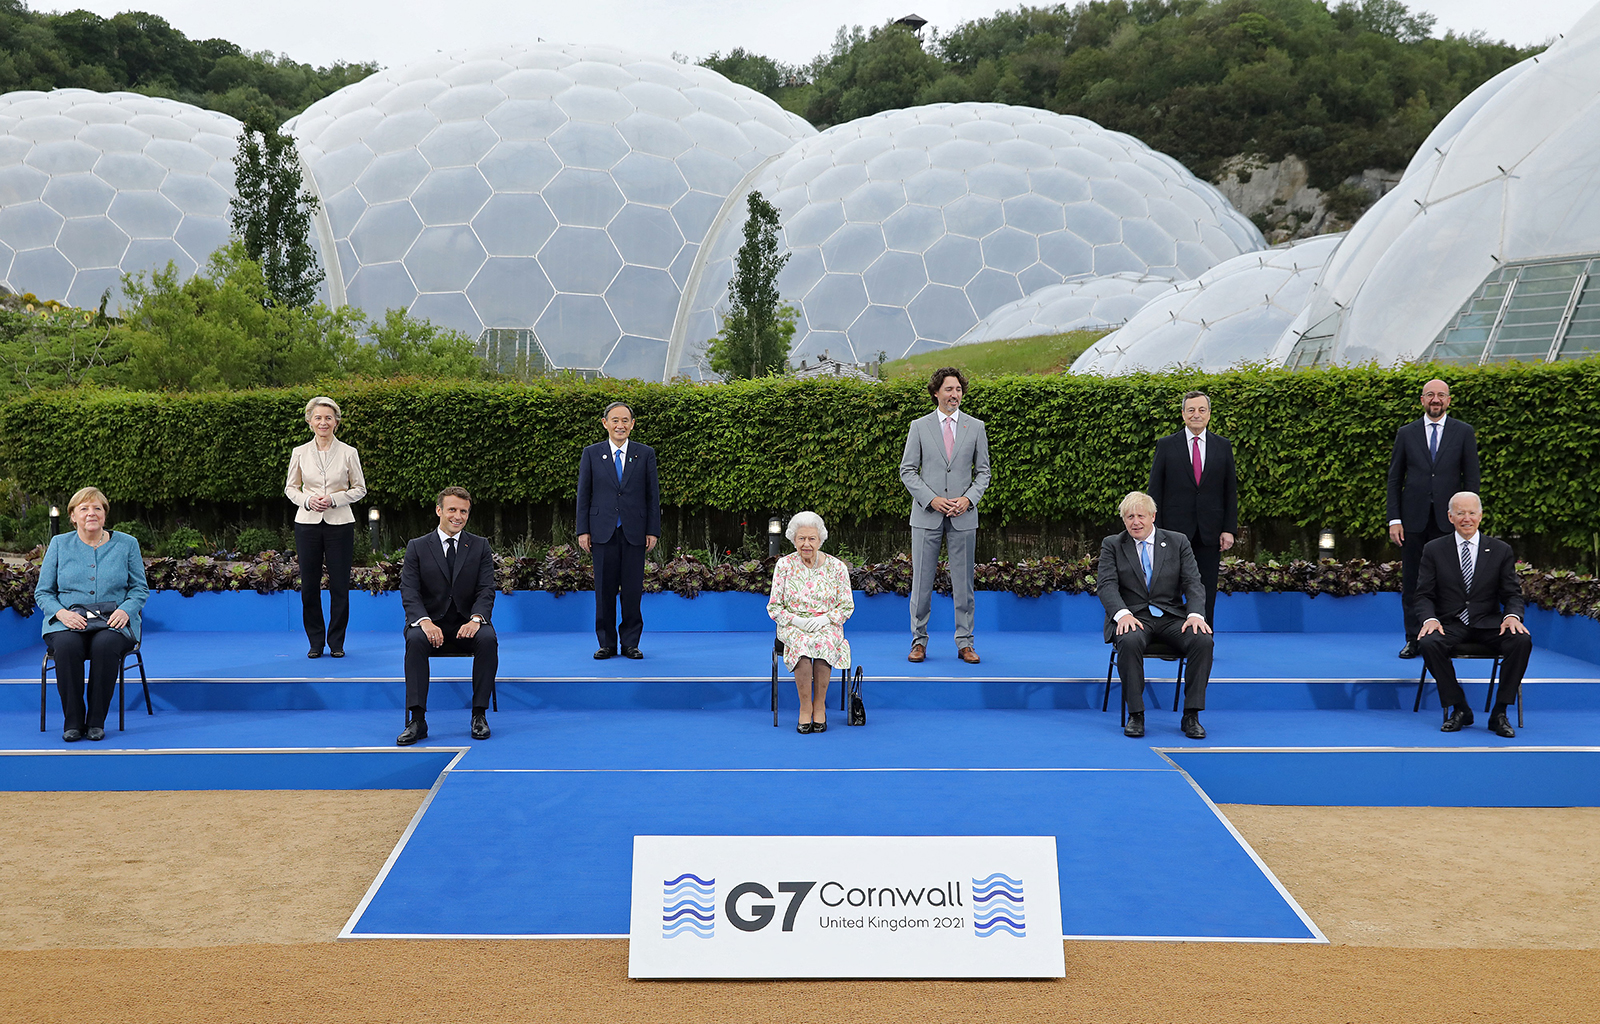 Britain's Queen Elizabeth II, center, poses for a photograph with, from left, Germany's Chancellor Angela Merkel, President of the European Commission Ursula von der Leyen, France's President Emmanuel Macron, Japan's Prime Minister Yoshihide Suga, Canada's Prime Minister Justin Trudeau, Britain's Prime Minister Boris Johnson , Italy's Prime minister Mario Draghi, President of the European Council Charles Michel and US President Joe Biden, during an evening reception at The Eden Project in England on June 11.